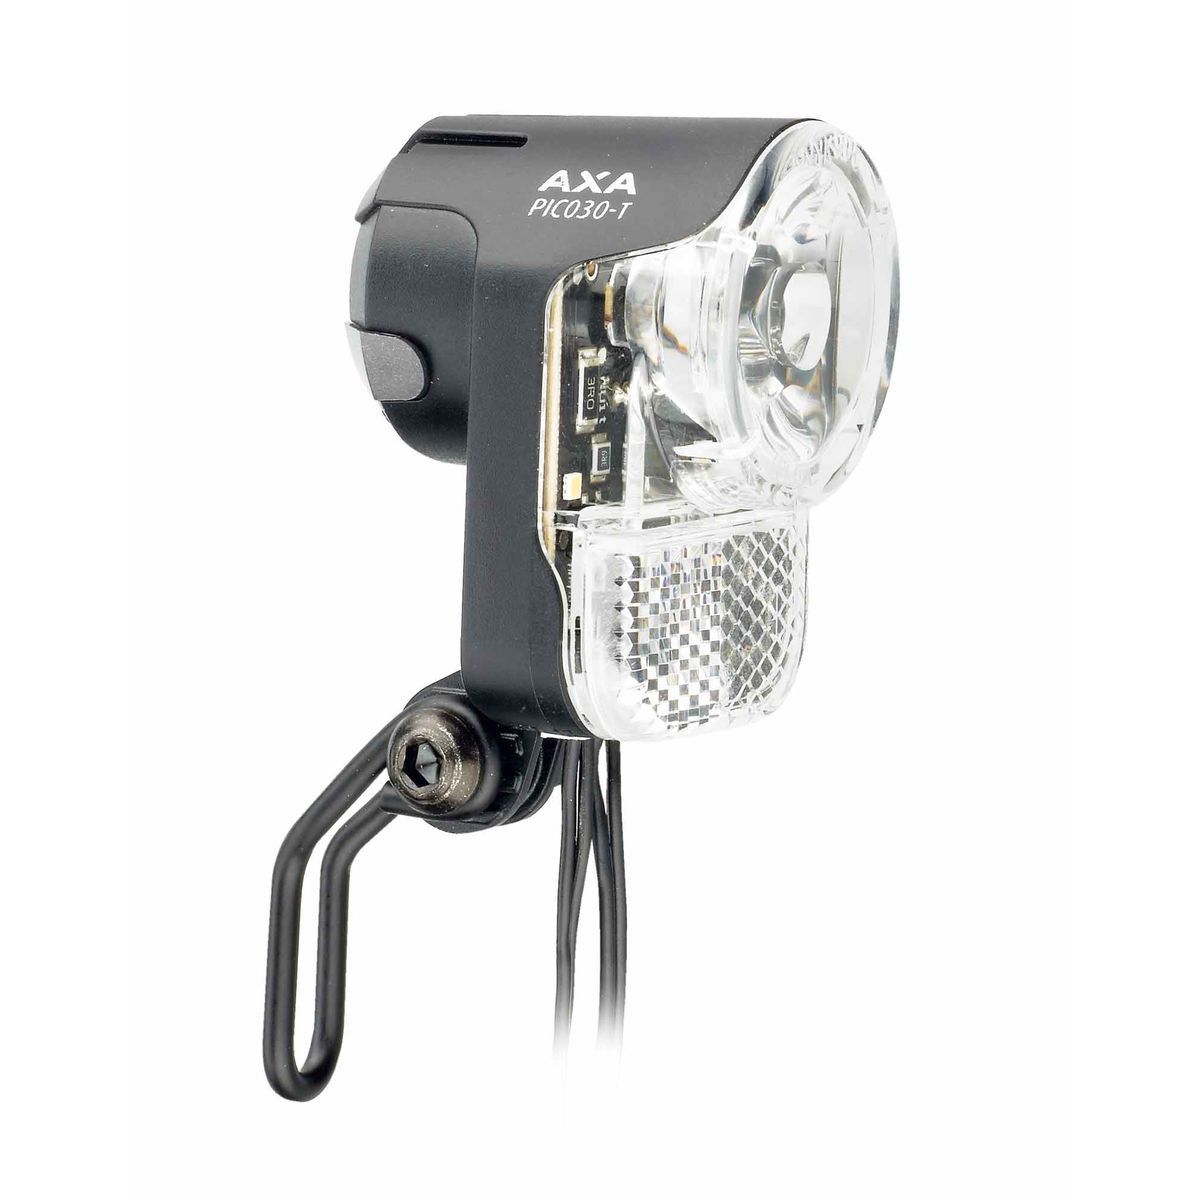 Pico30-T Steady Auto front light